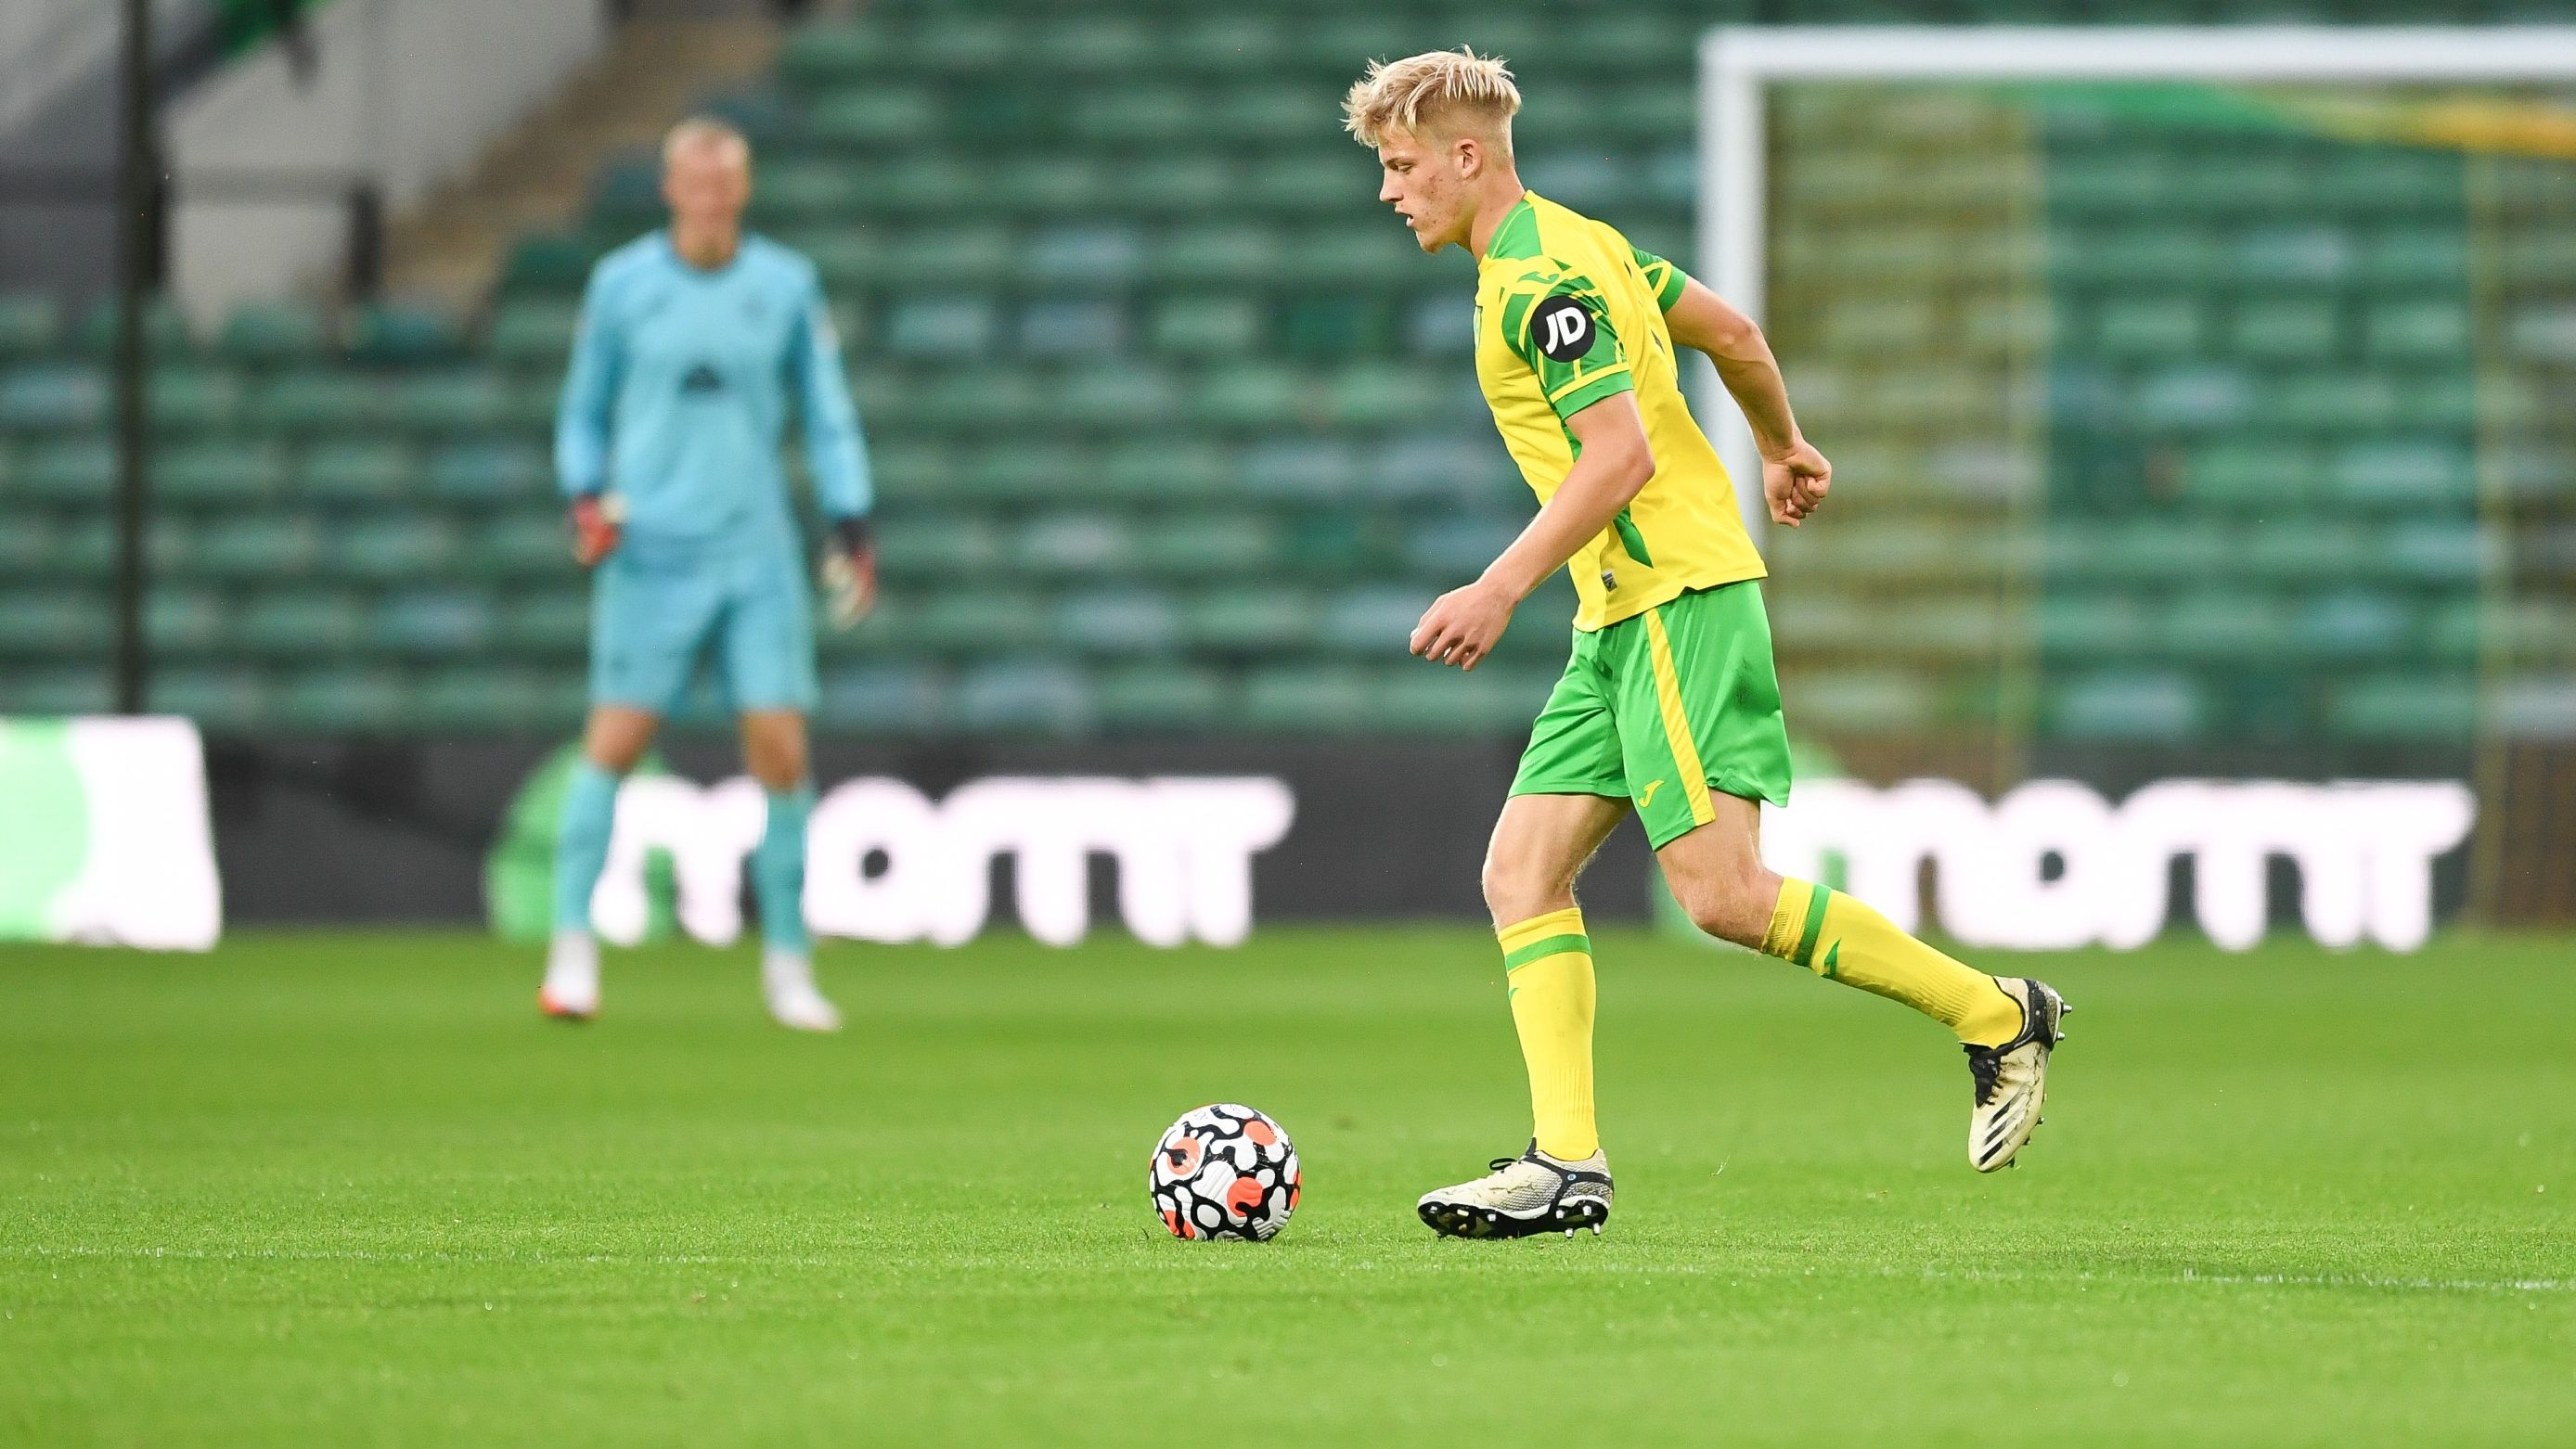 match-preview-norwich-city-under-23s-v-burnley-under-23s-2021